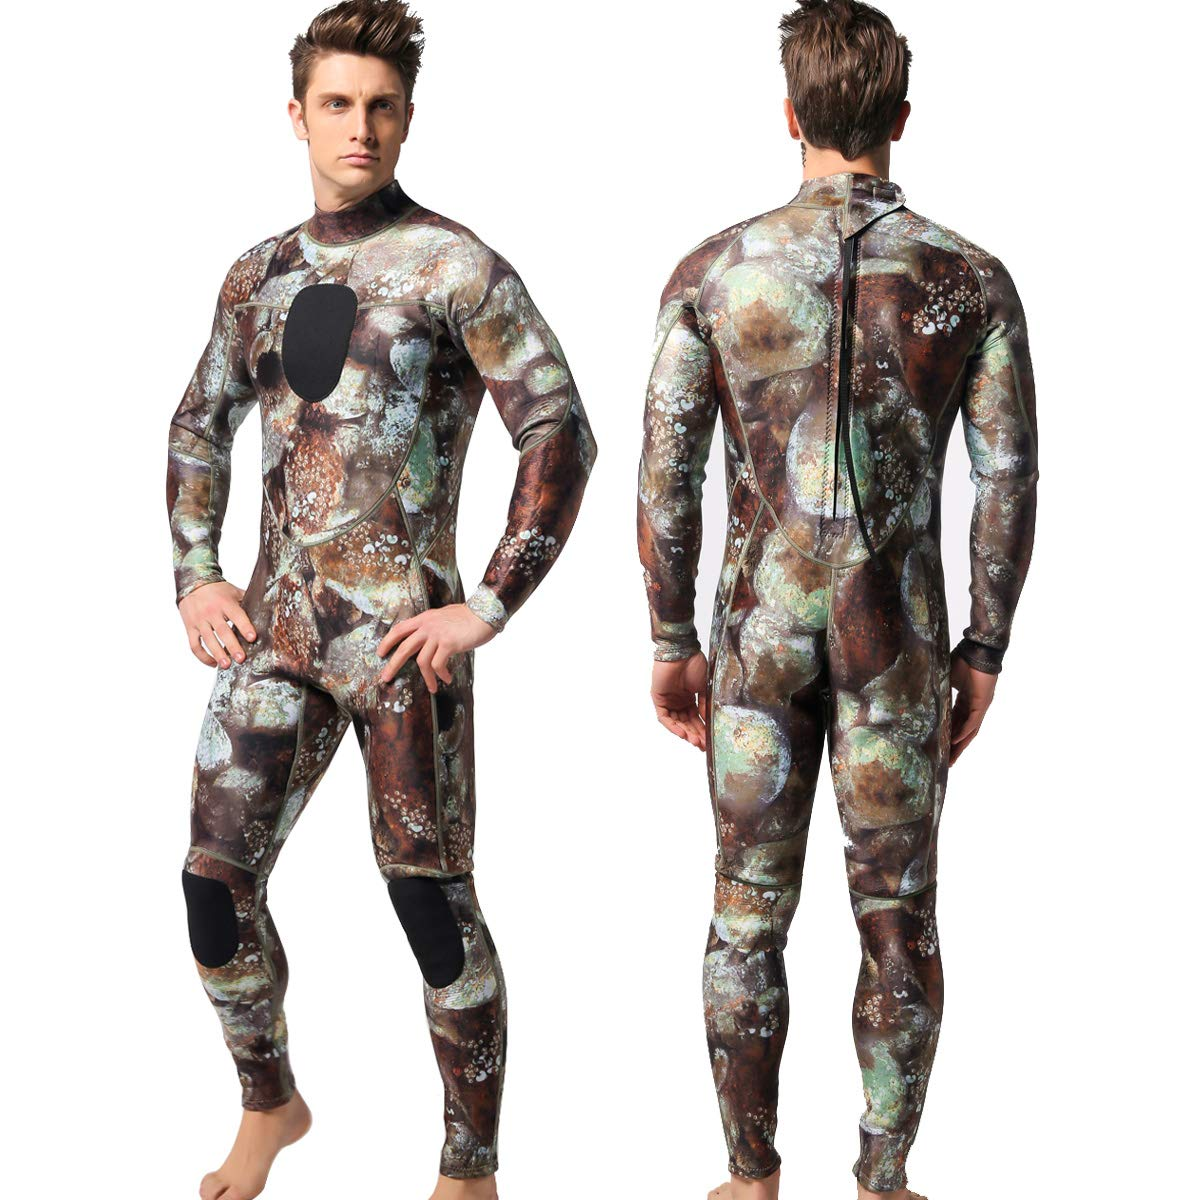 MYLEDI Neoprene 3mm Scuba Diving Suit One Piece Mens Spearfishing Full Body Spearfishing Wetsuit (MY003, XXL) by MYLEDI